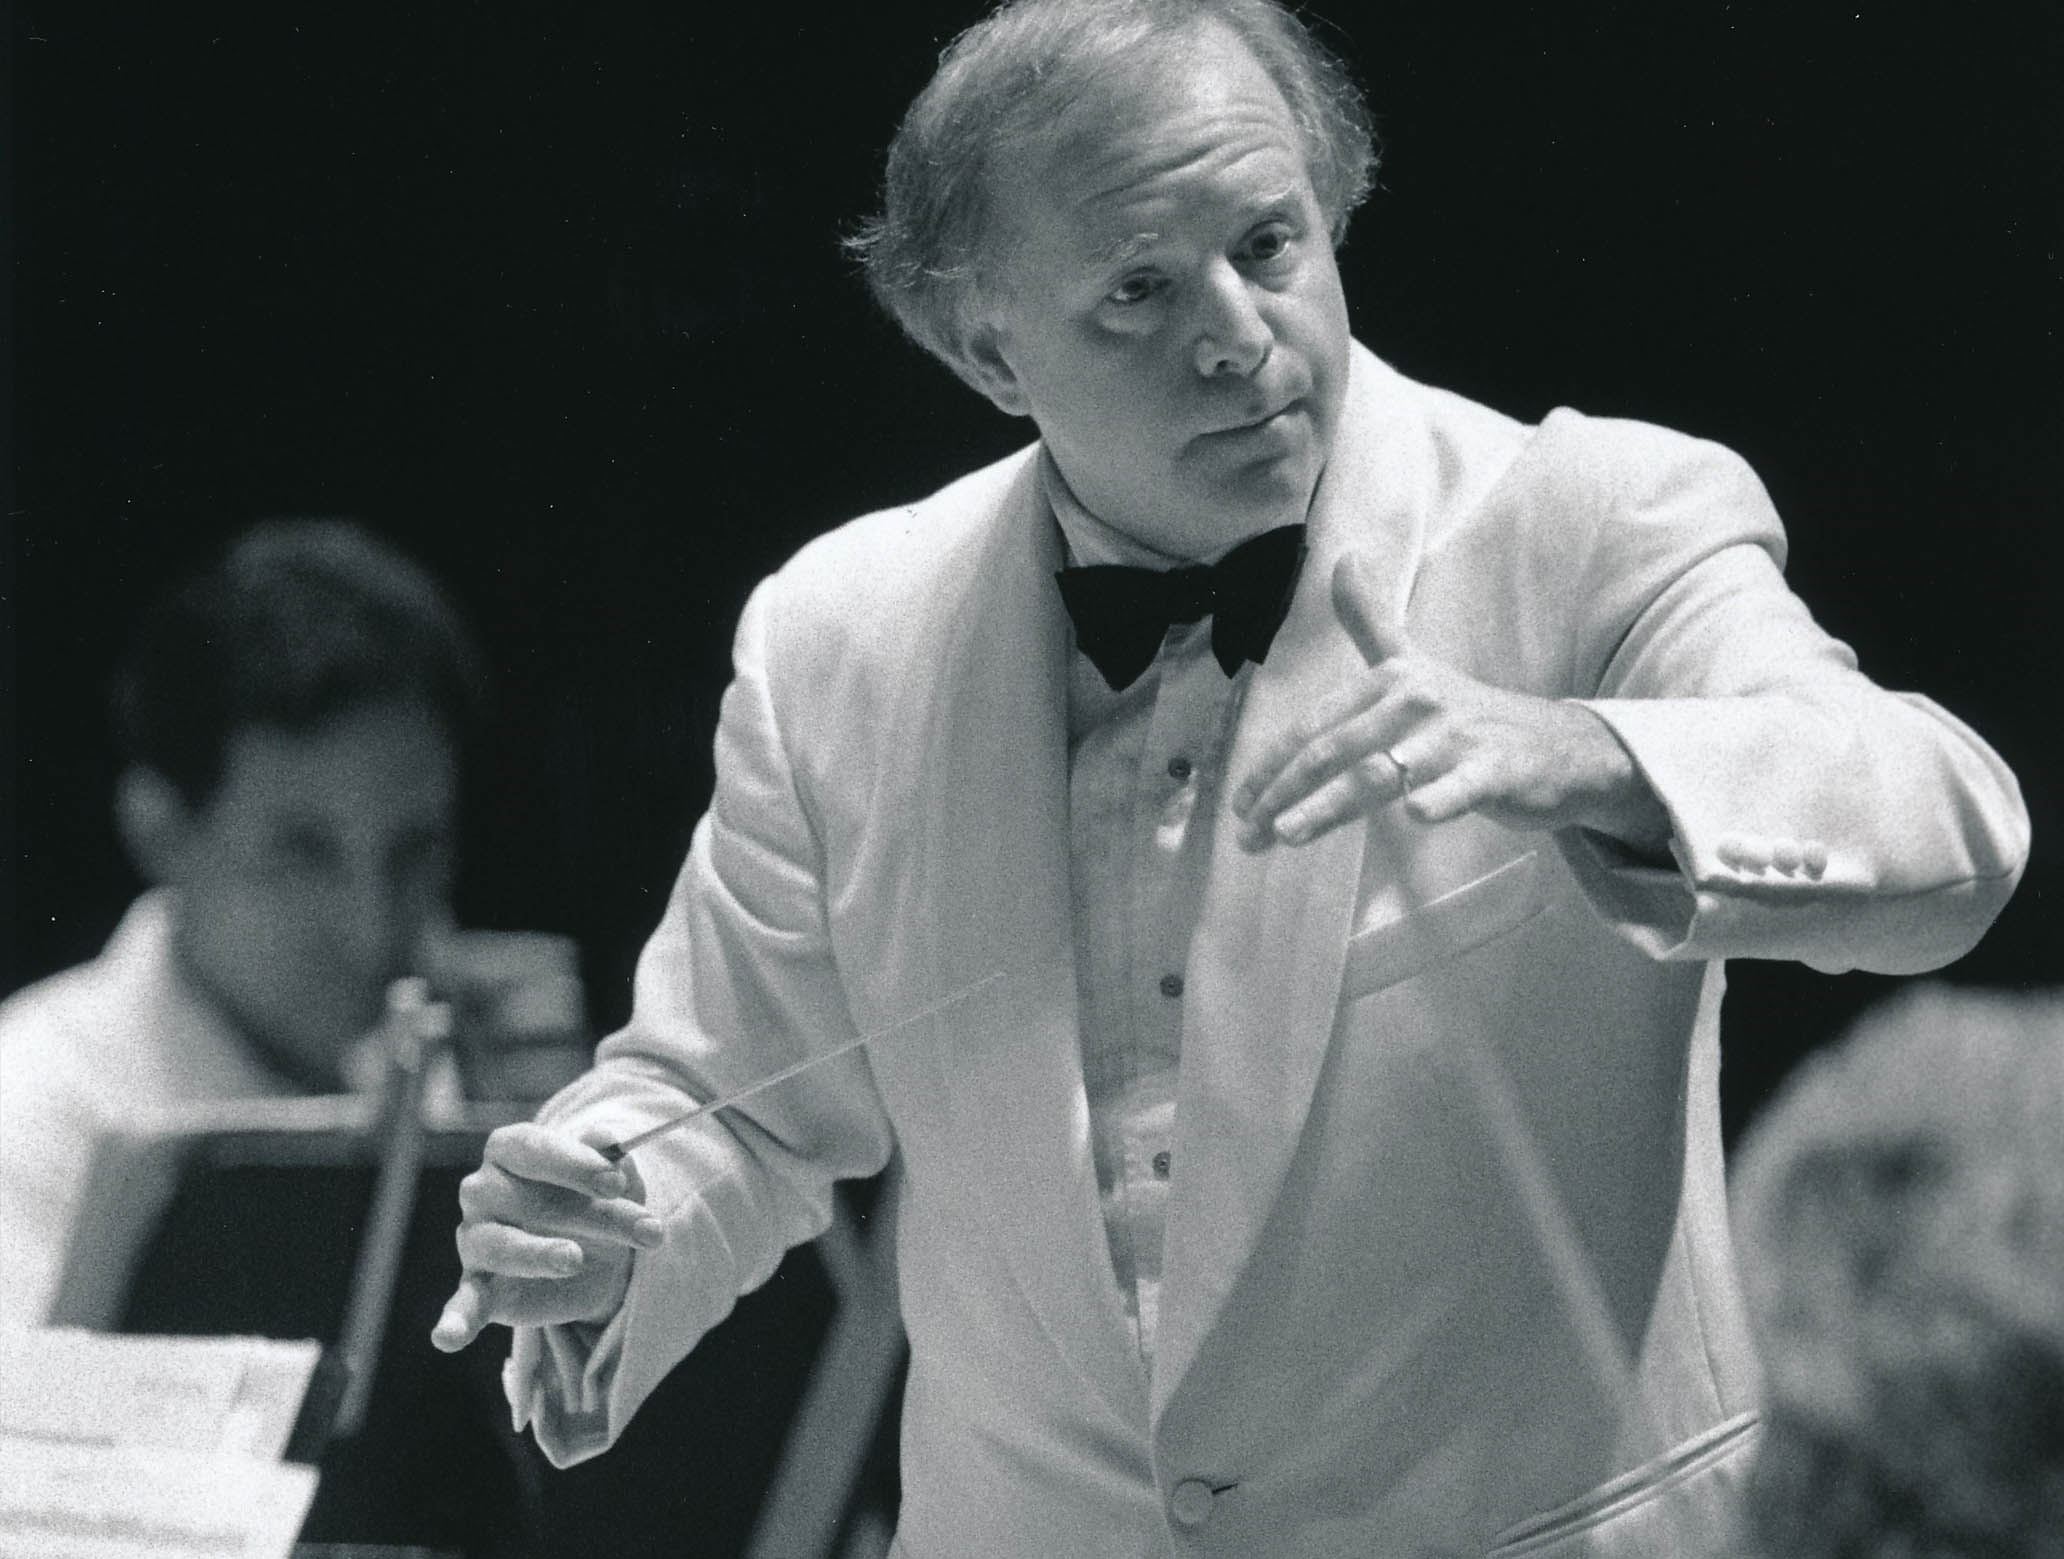 Leonard Slatkin conducting the Orchestra at Blossom Music Center. Slatkin and the Orchestra are dressed in white, which is formal dress for Blossom performances.